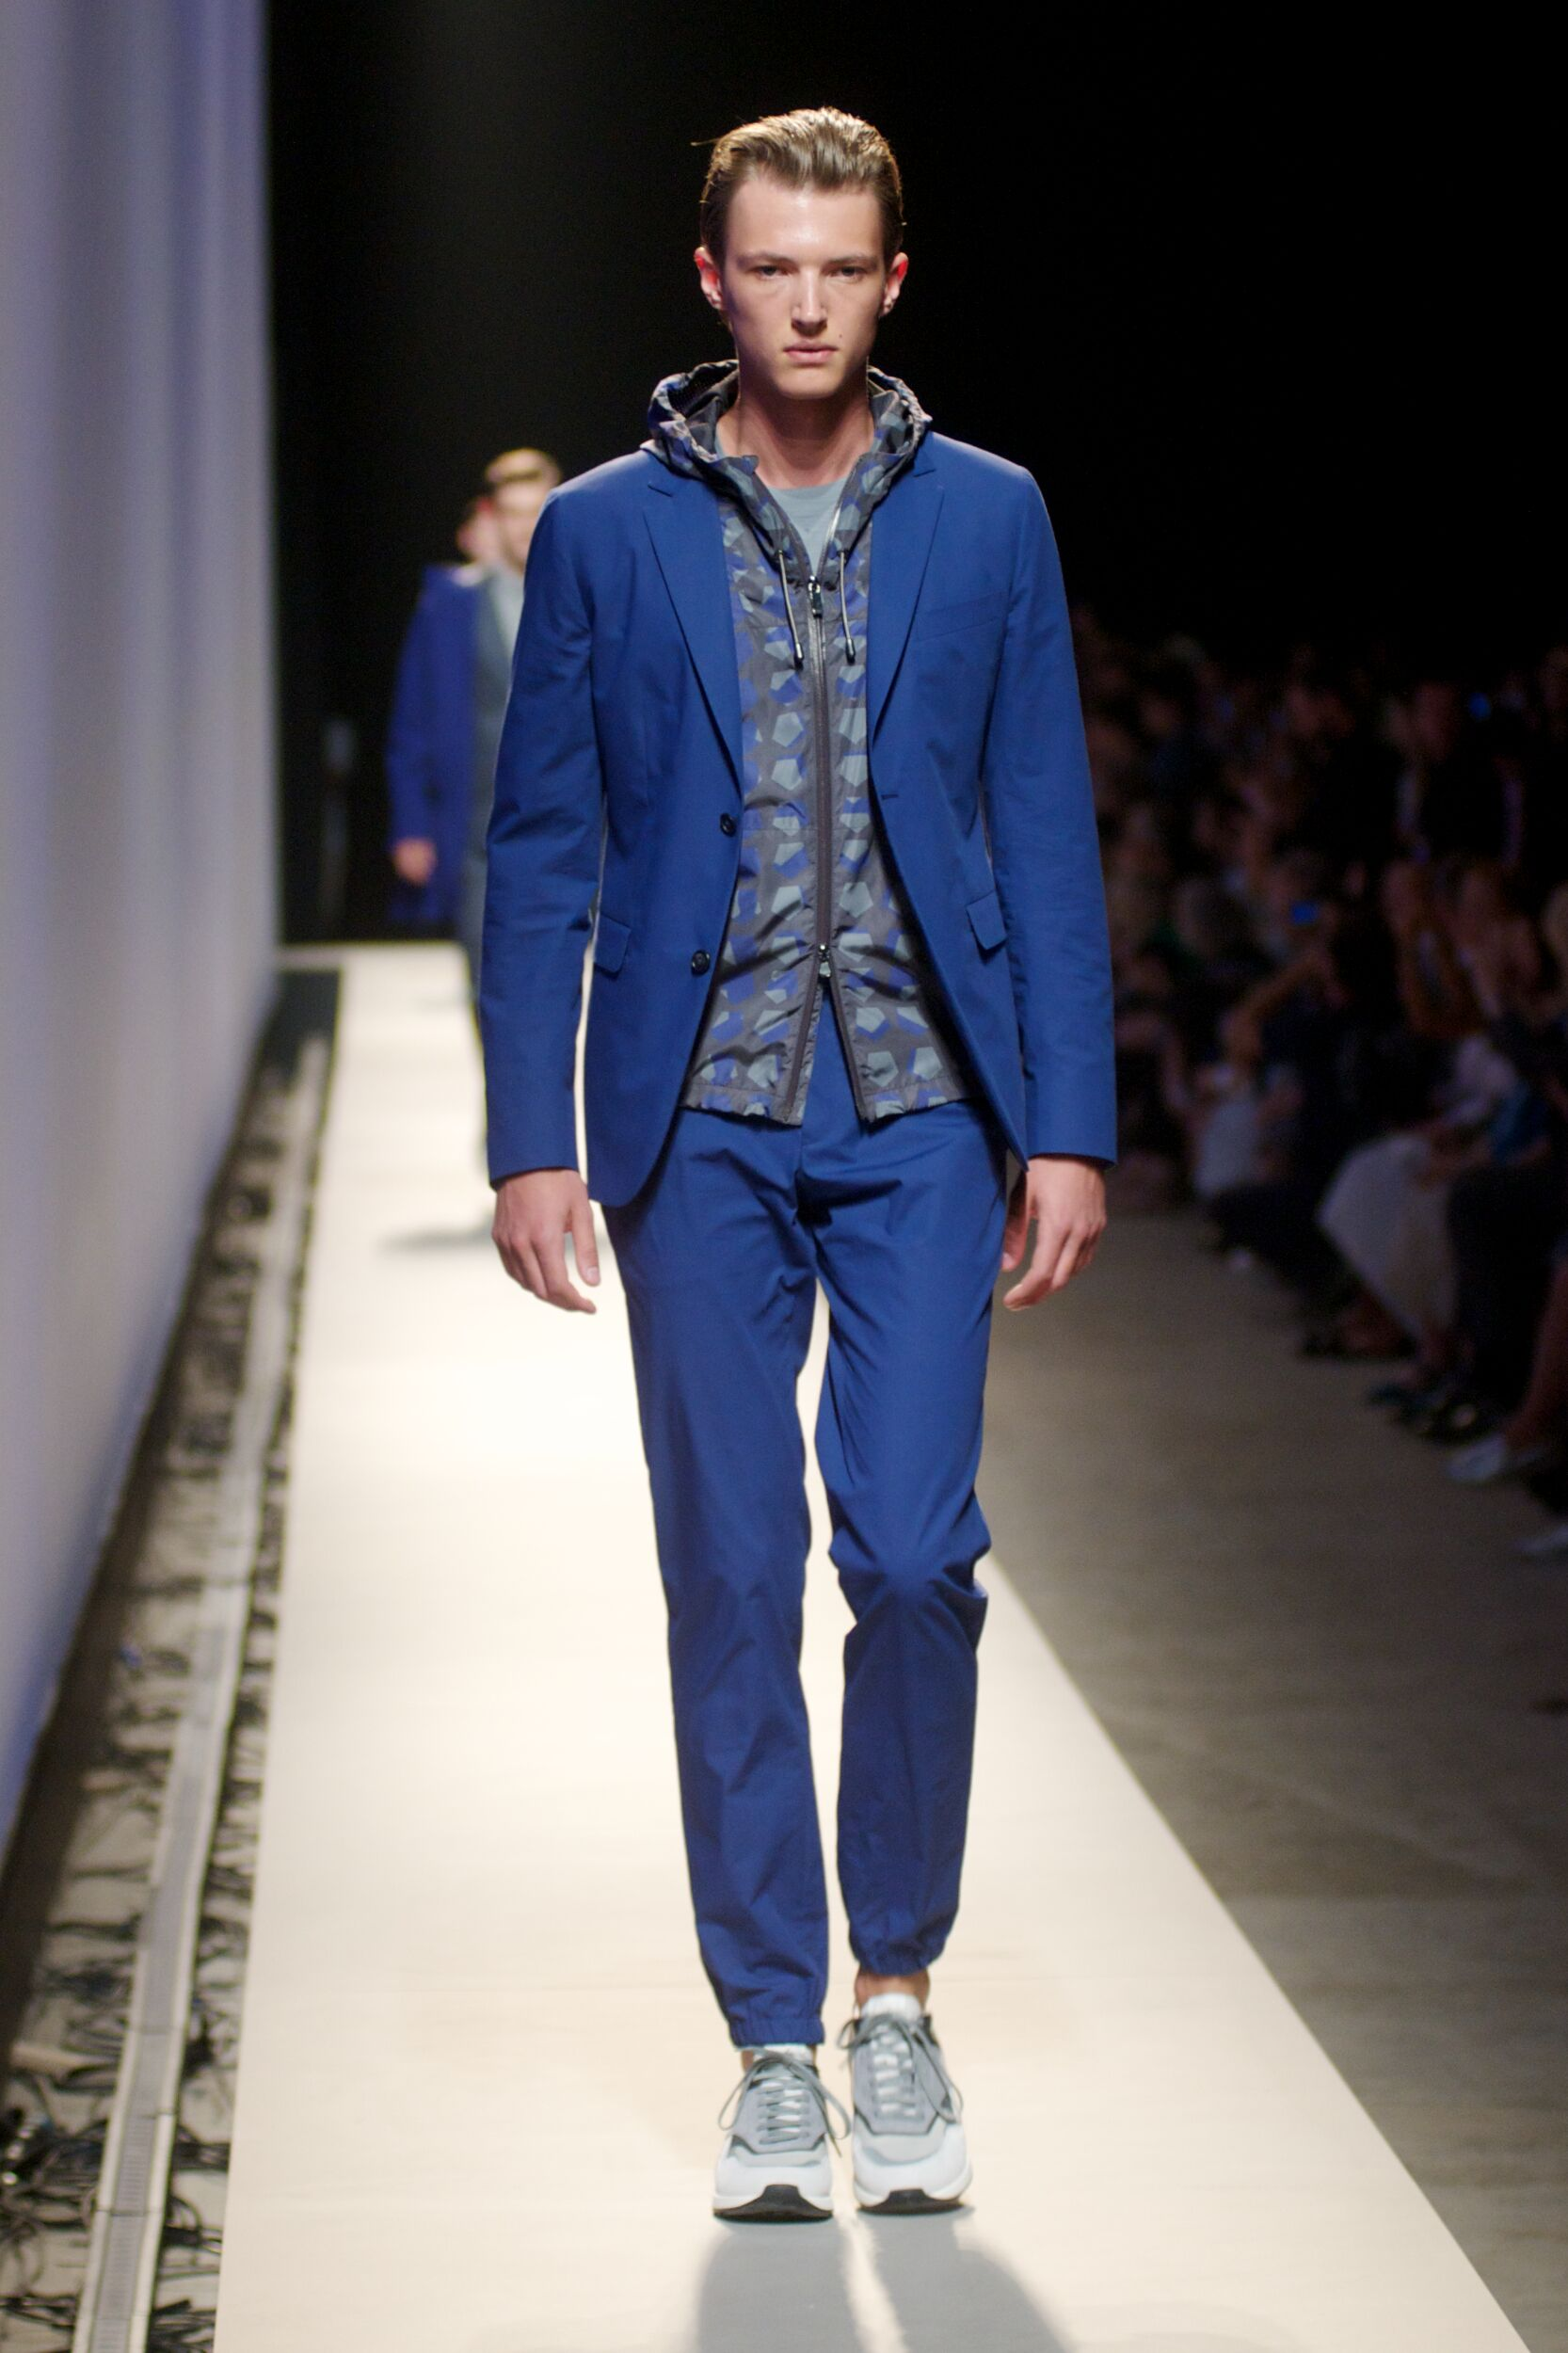 Fashion Show 2015 Summer Men Men Fashion Show Summer